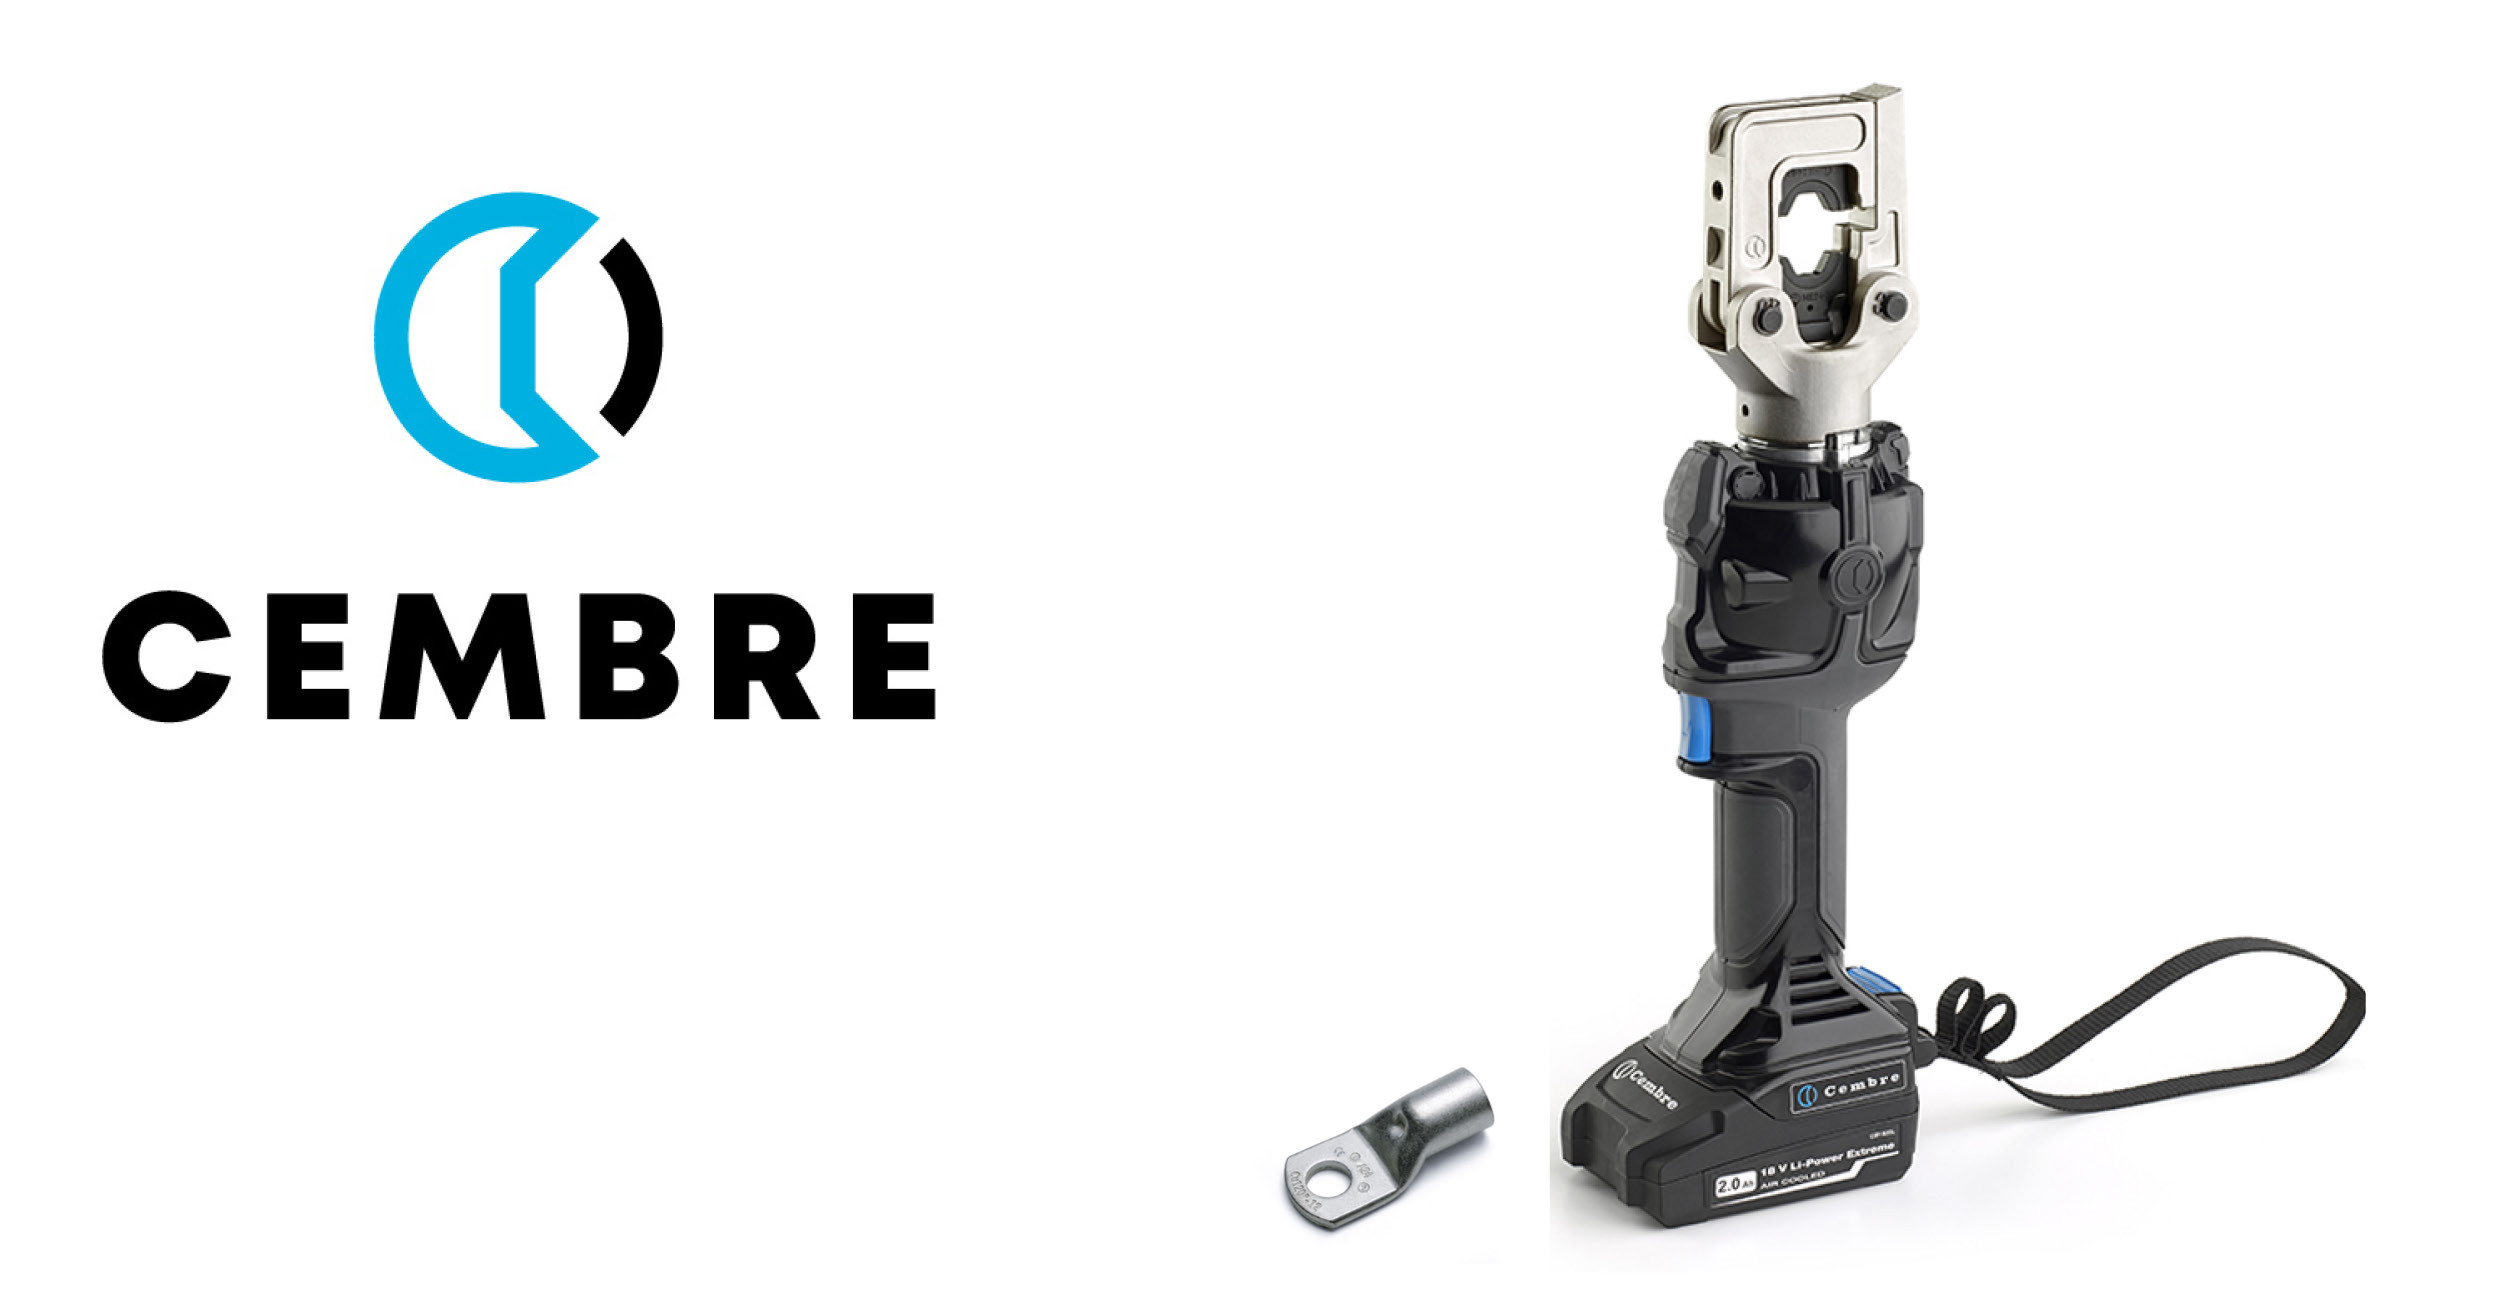 The Complete Lug Crimping Solution from Cembre